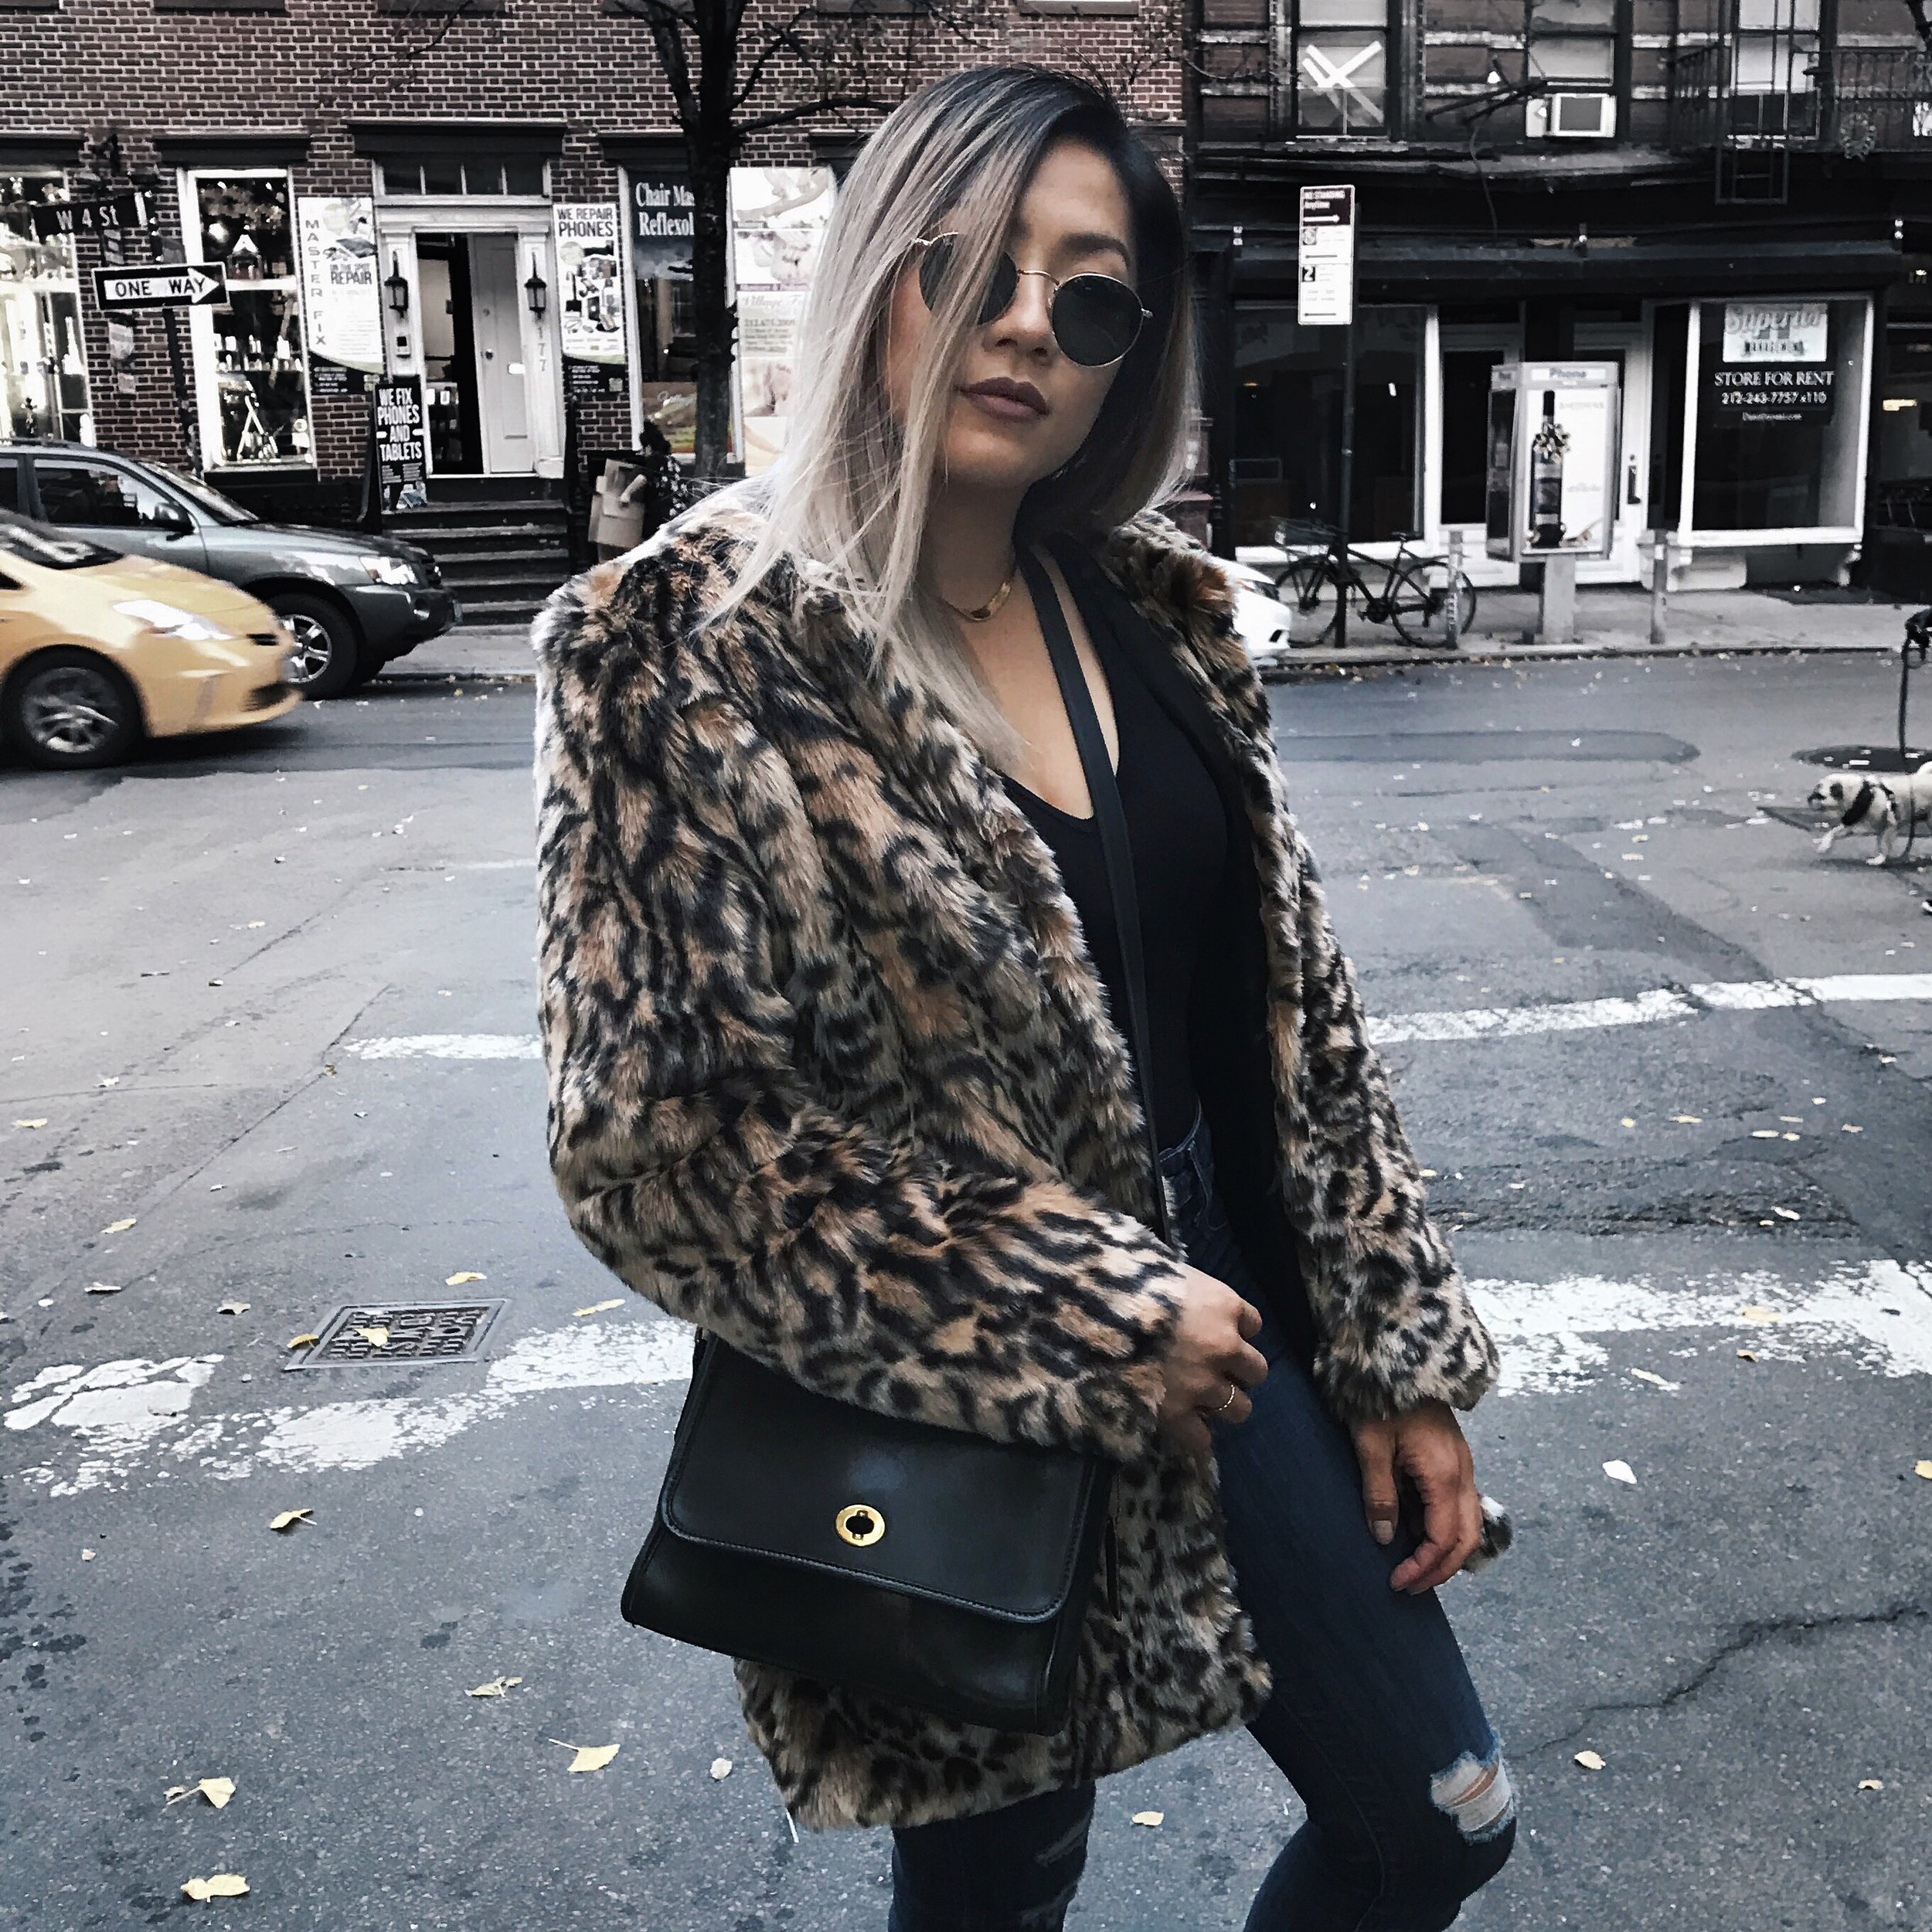 Steve Madden Faux Fur Leopard Print Coat - SHOP THE COAT BELOW  | Purse: Coach Vintage Crossbody Bag -  something similar here